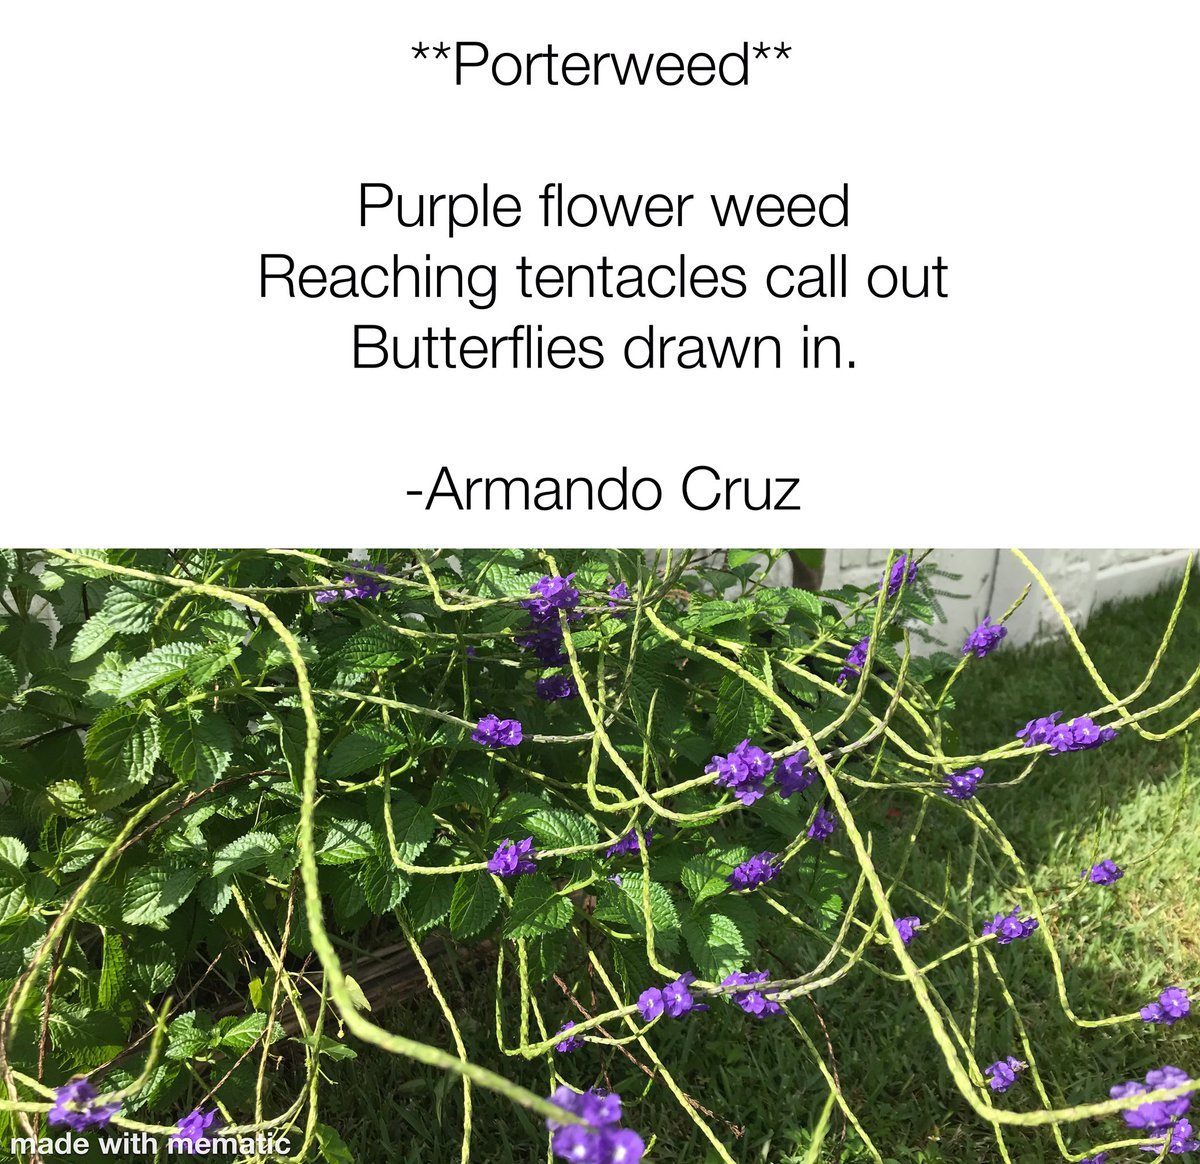 Today's haiku, - 9/22/20 **Porterweed** Purple flower weed Reaching tentacles call out Butterflies drawn in.  - #art #haiku #poetry #butterfly #butterflygarden #porterweed https://t.co/siUtoak48A